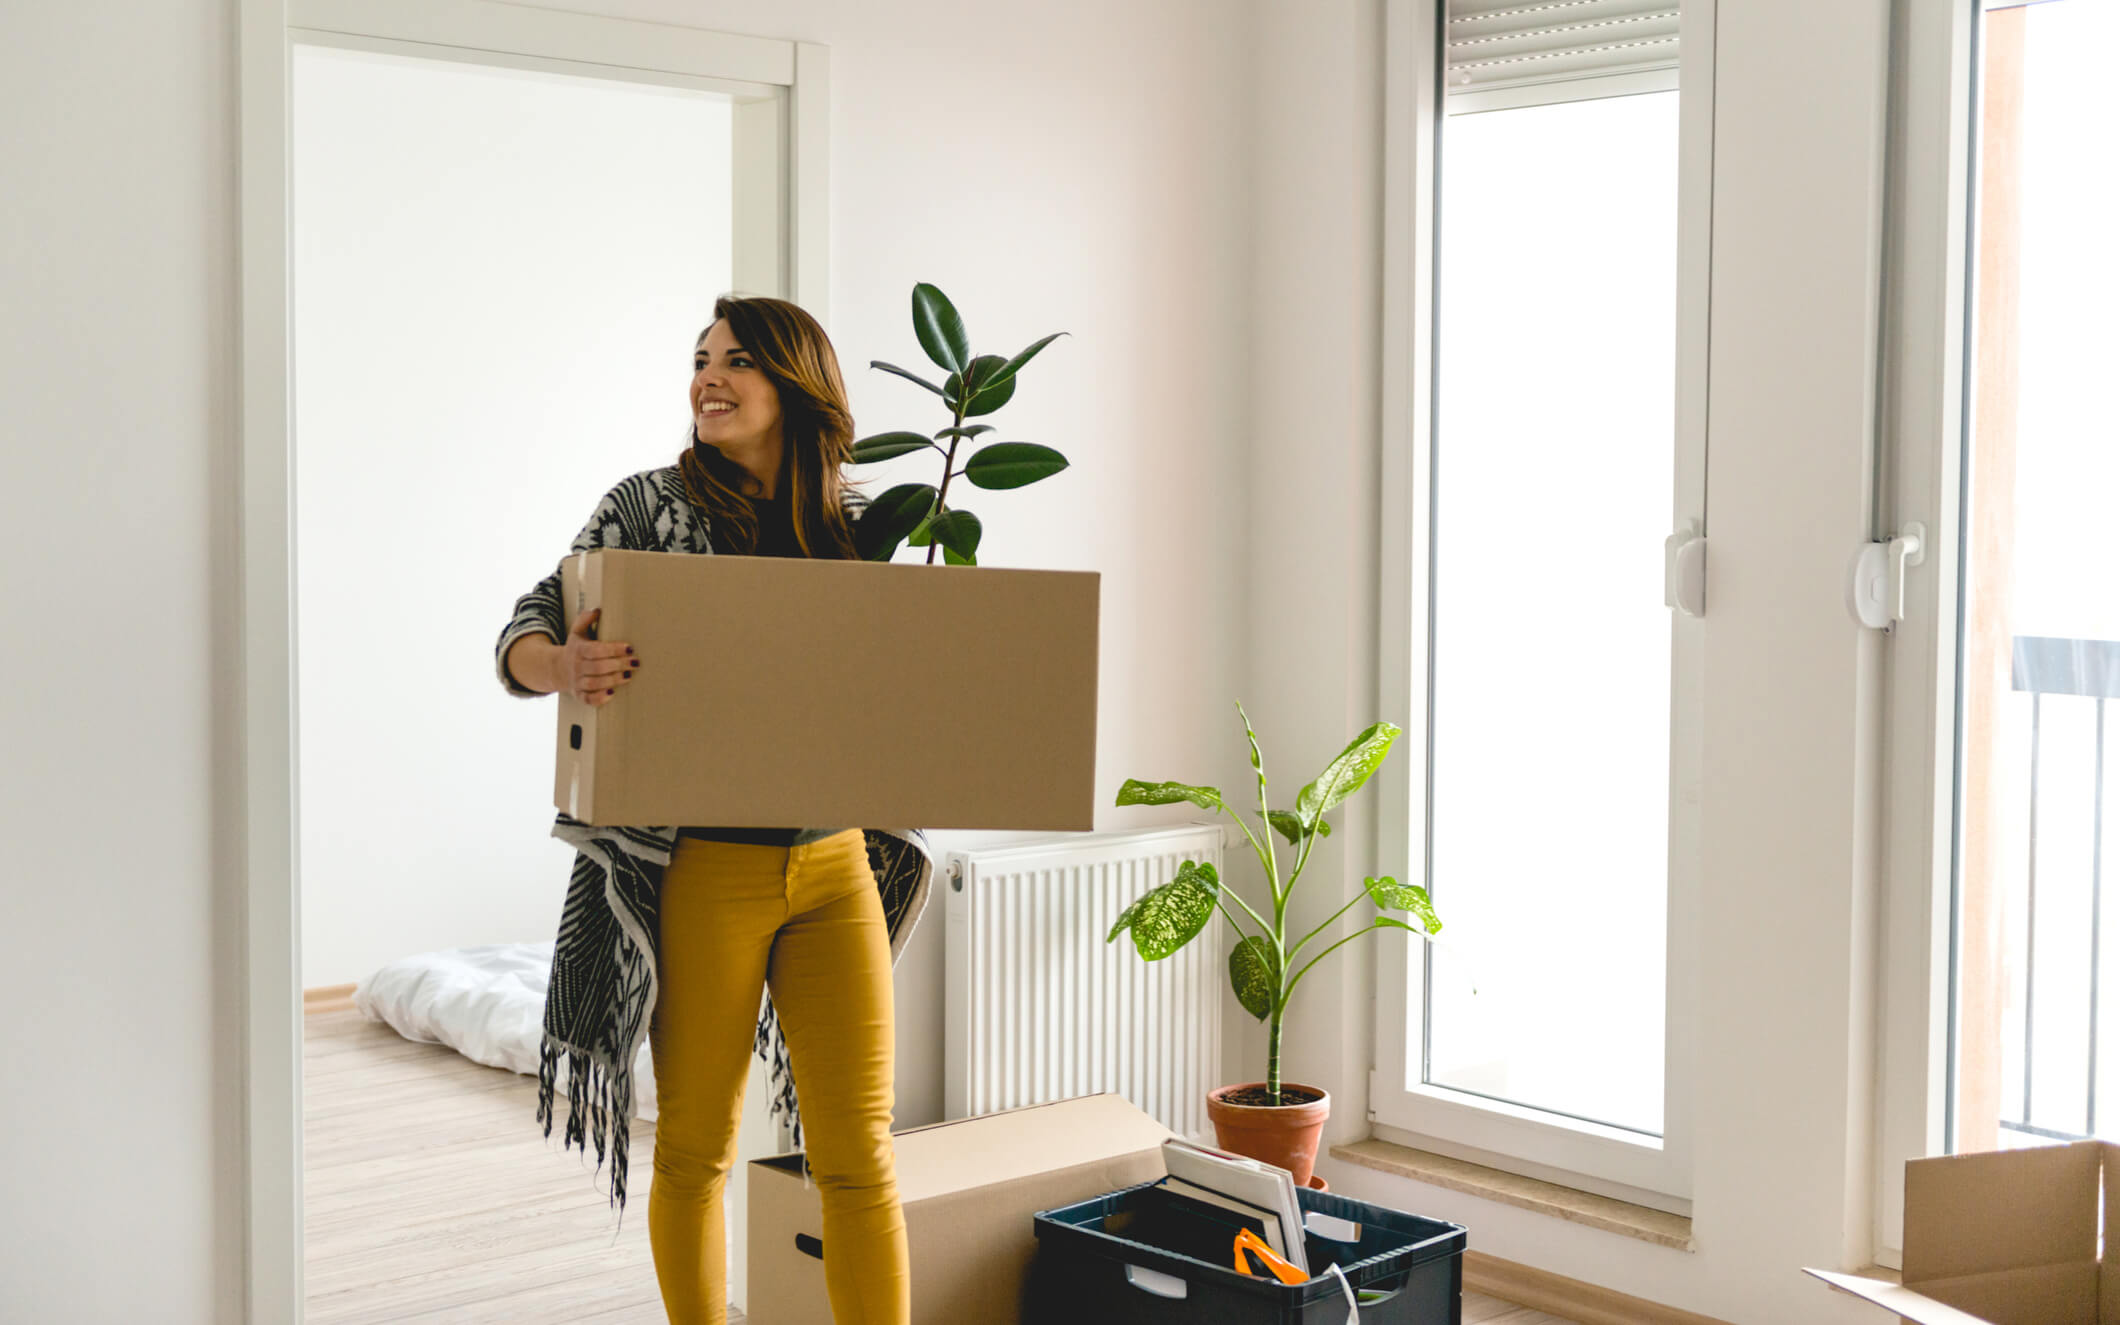 Considering Home Ownership 8 Things to Look for When Buying a Home FSCB